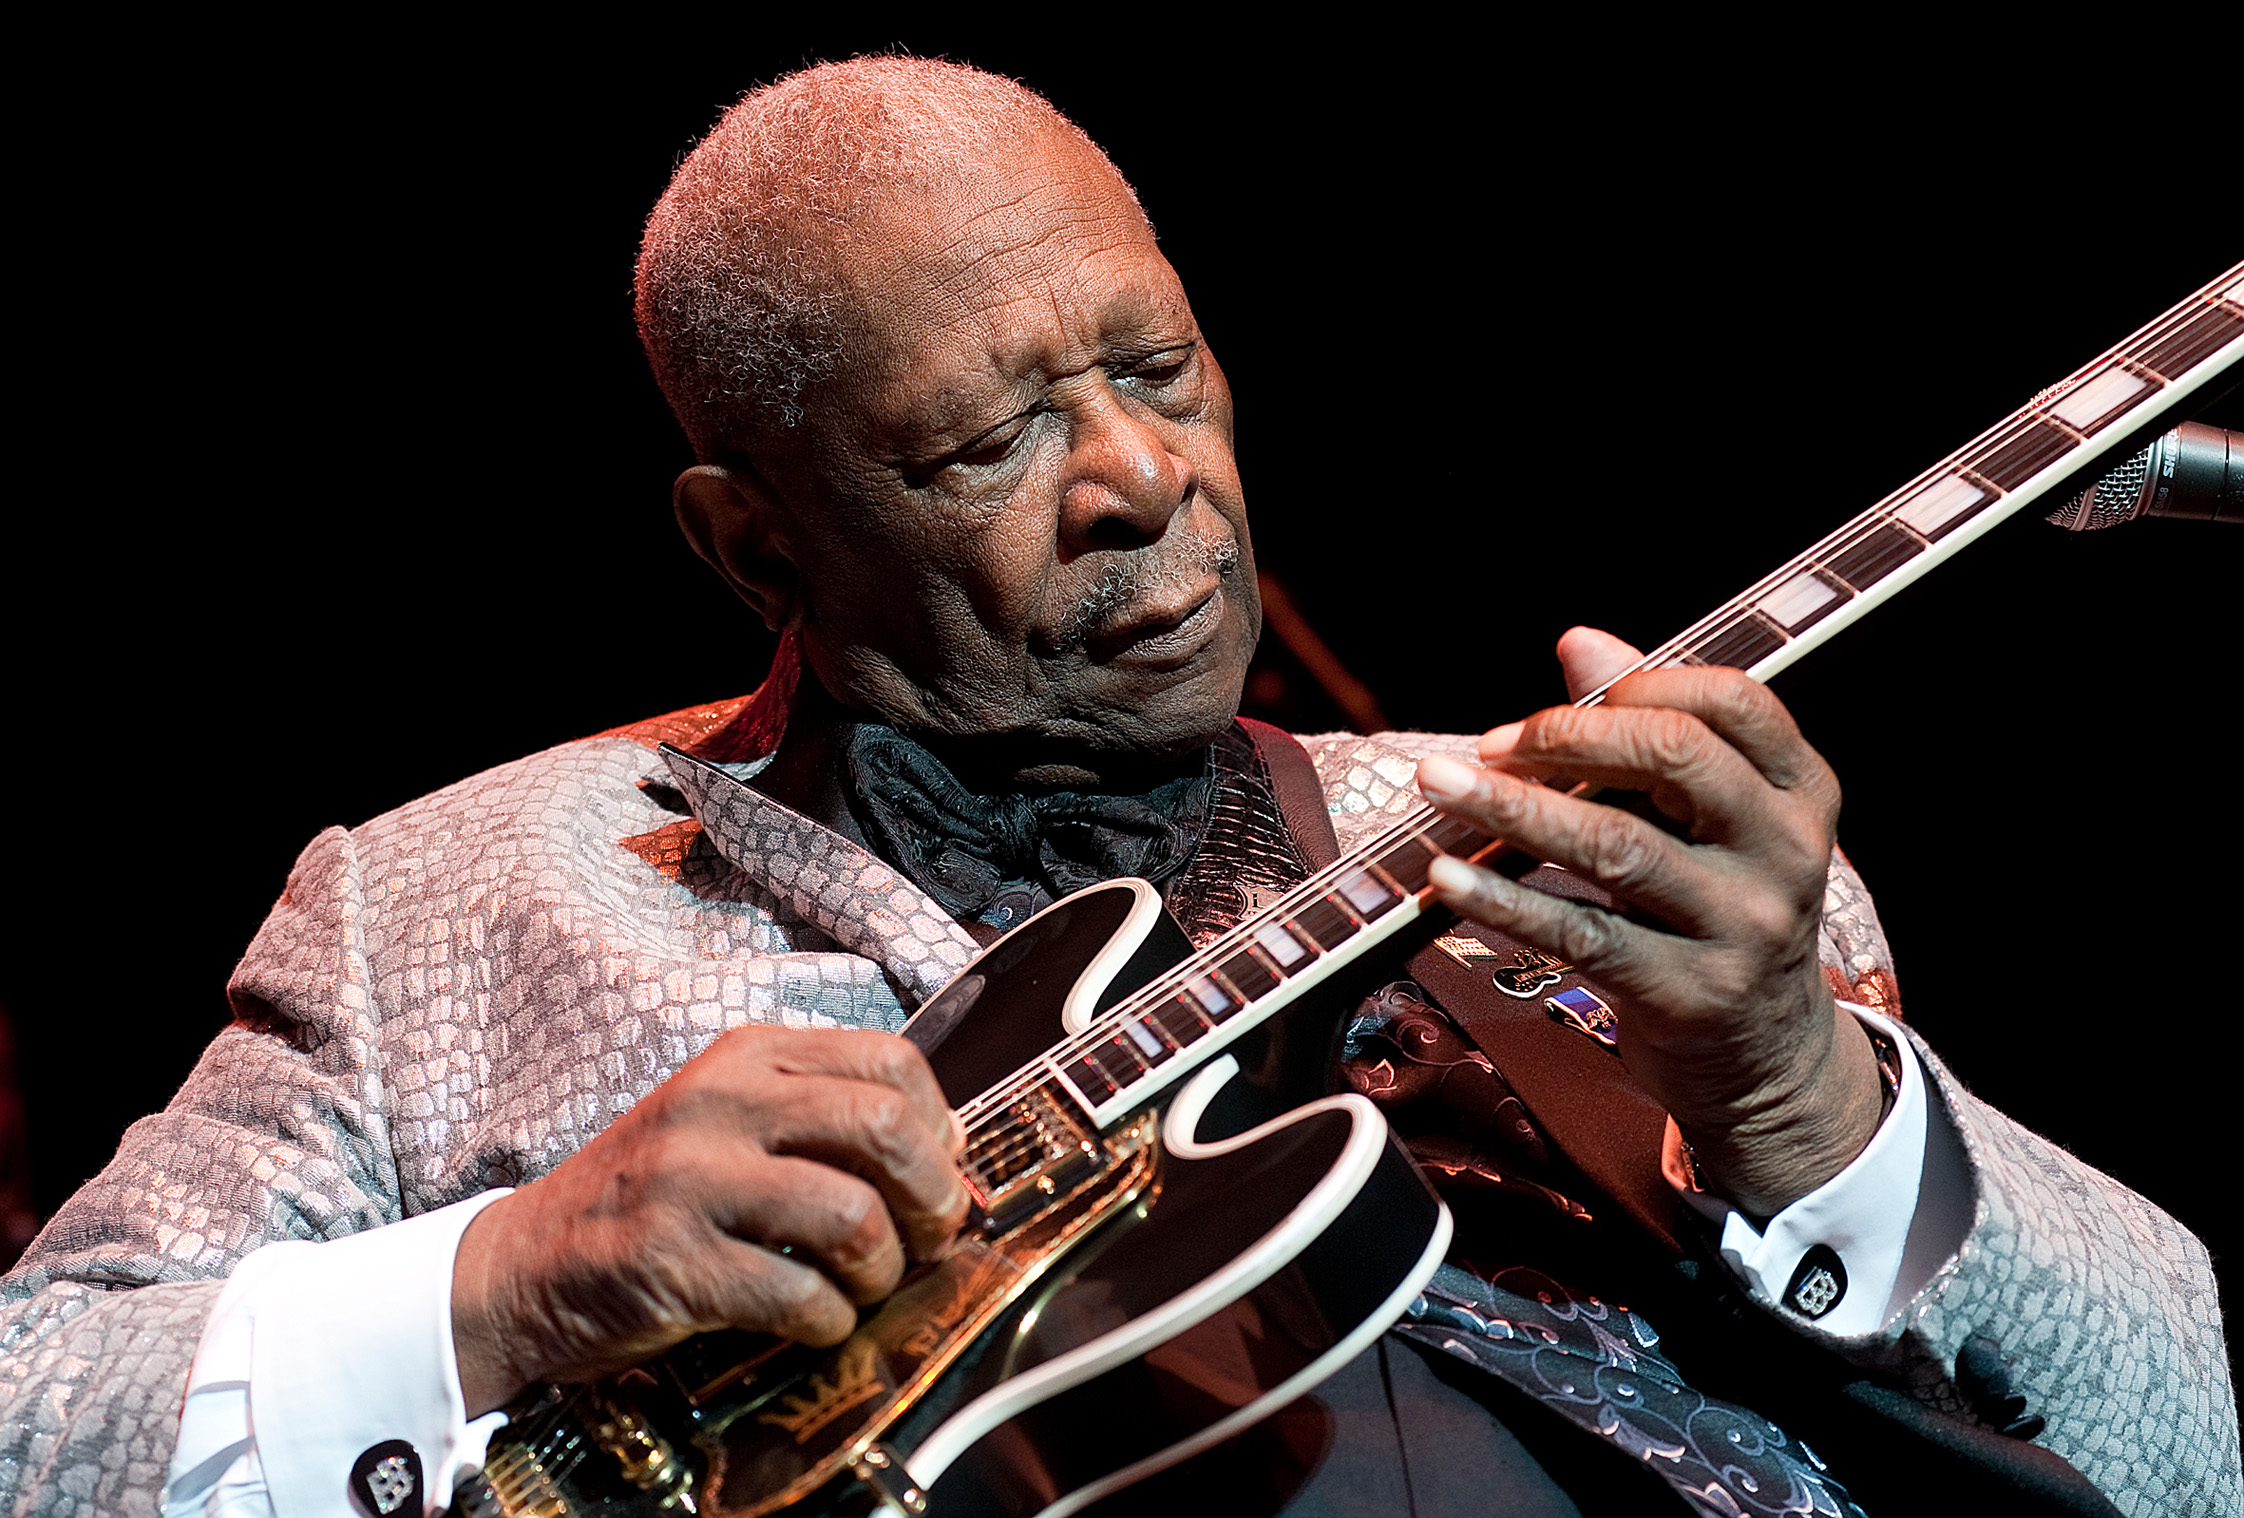 GIT_BBKing_Royal_Albert_Hall_RETOUCHED_25.JPG